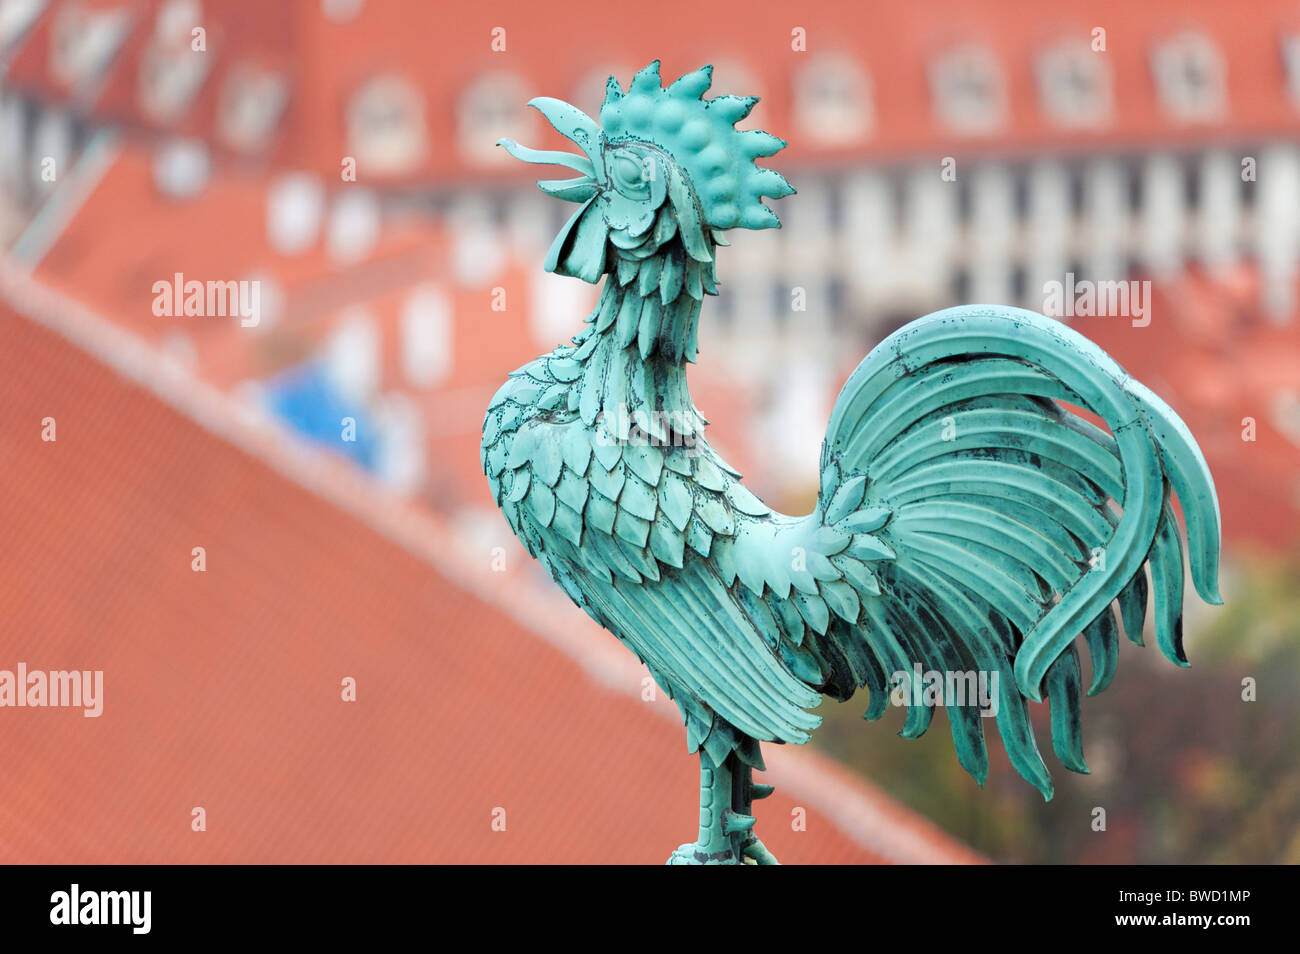 Roof Ornament Stock Photos & Roof Ornament Stock Images - Alamy